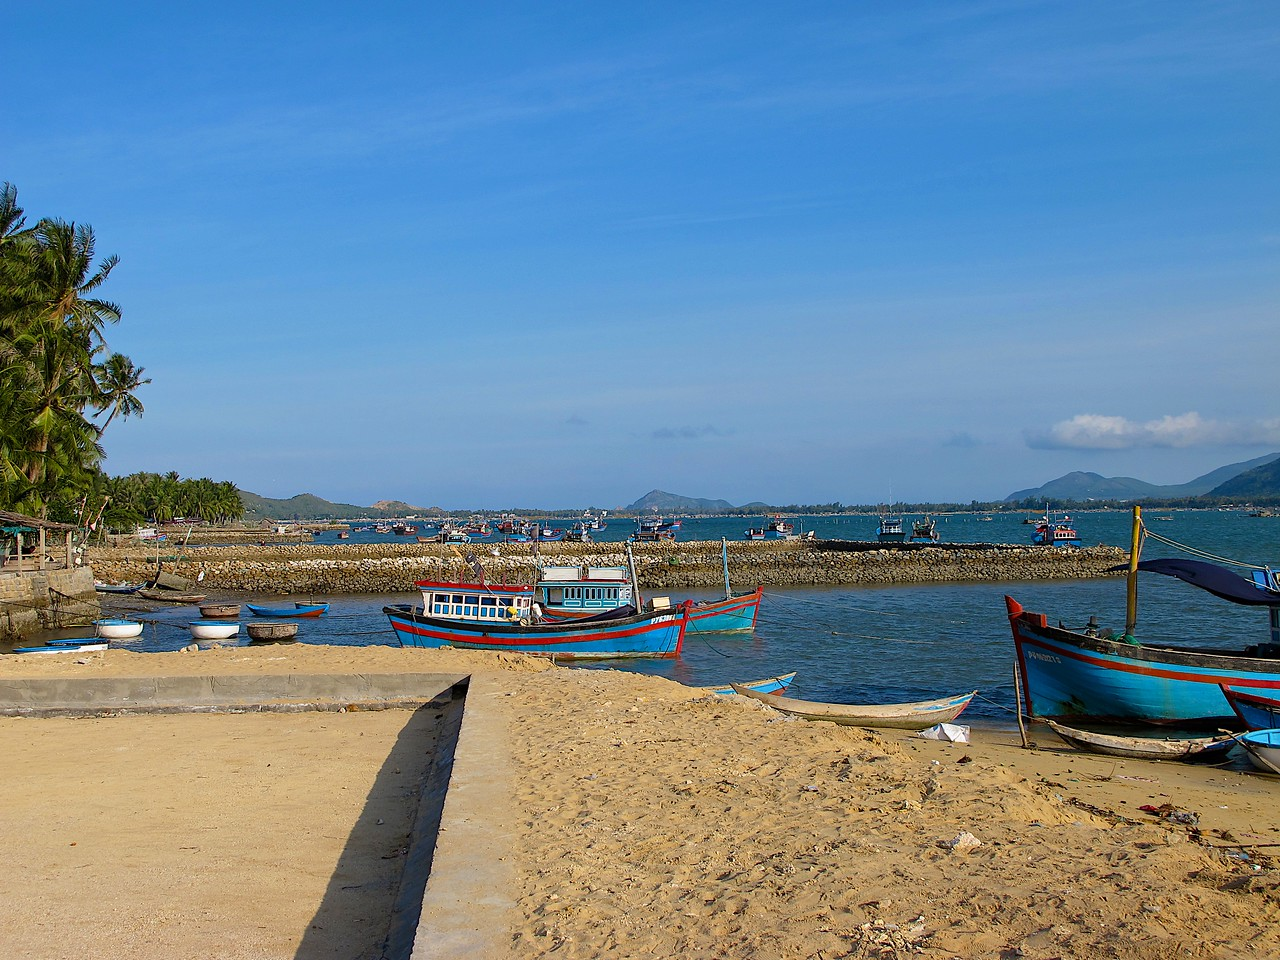 Near the resort are two small local fishing villages.